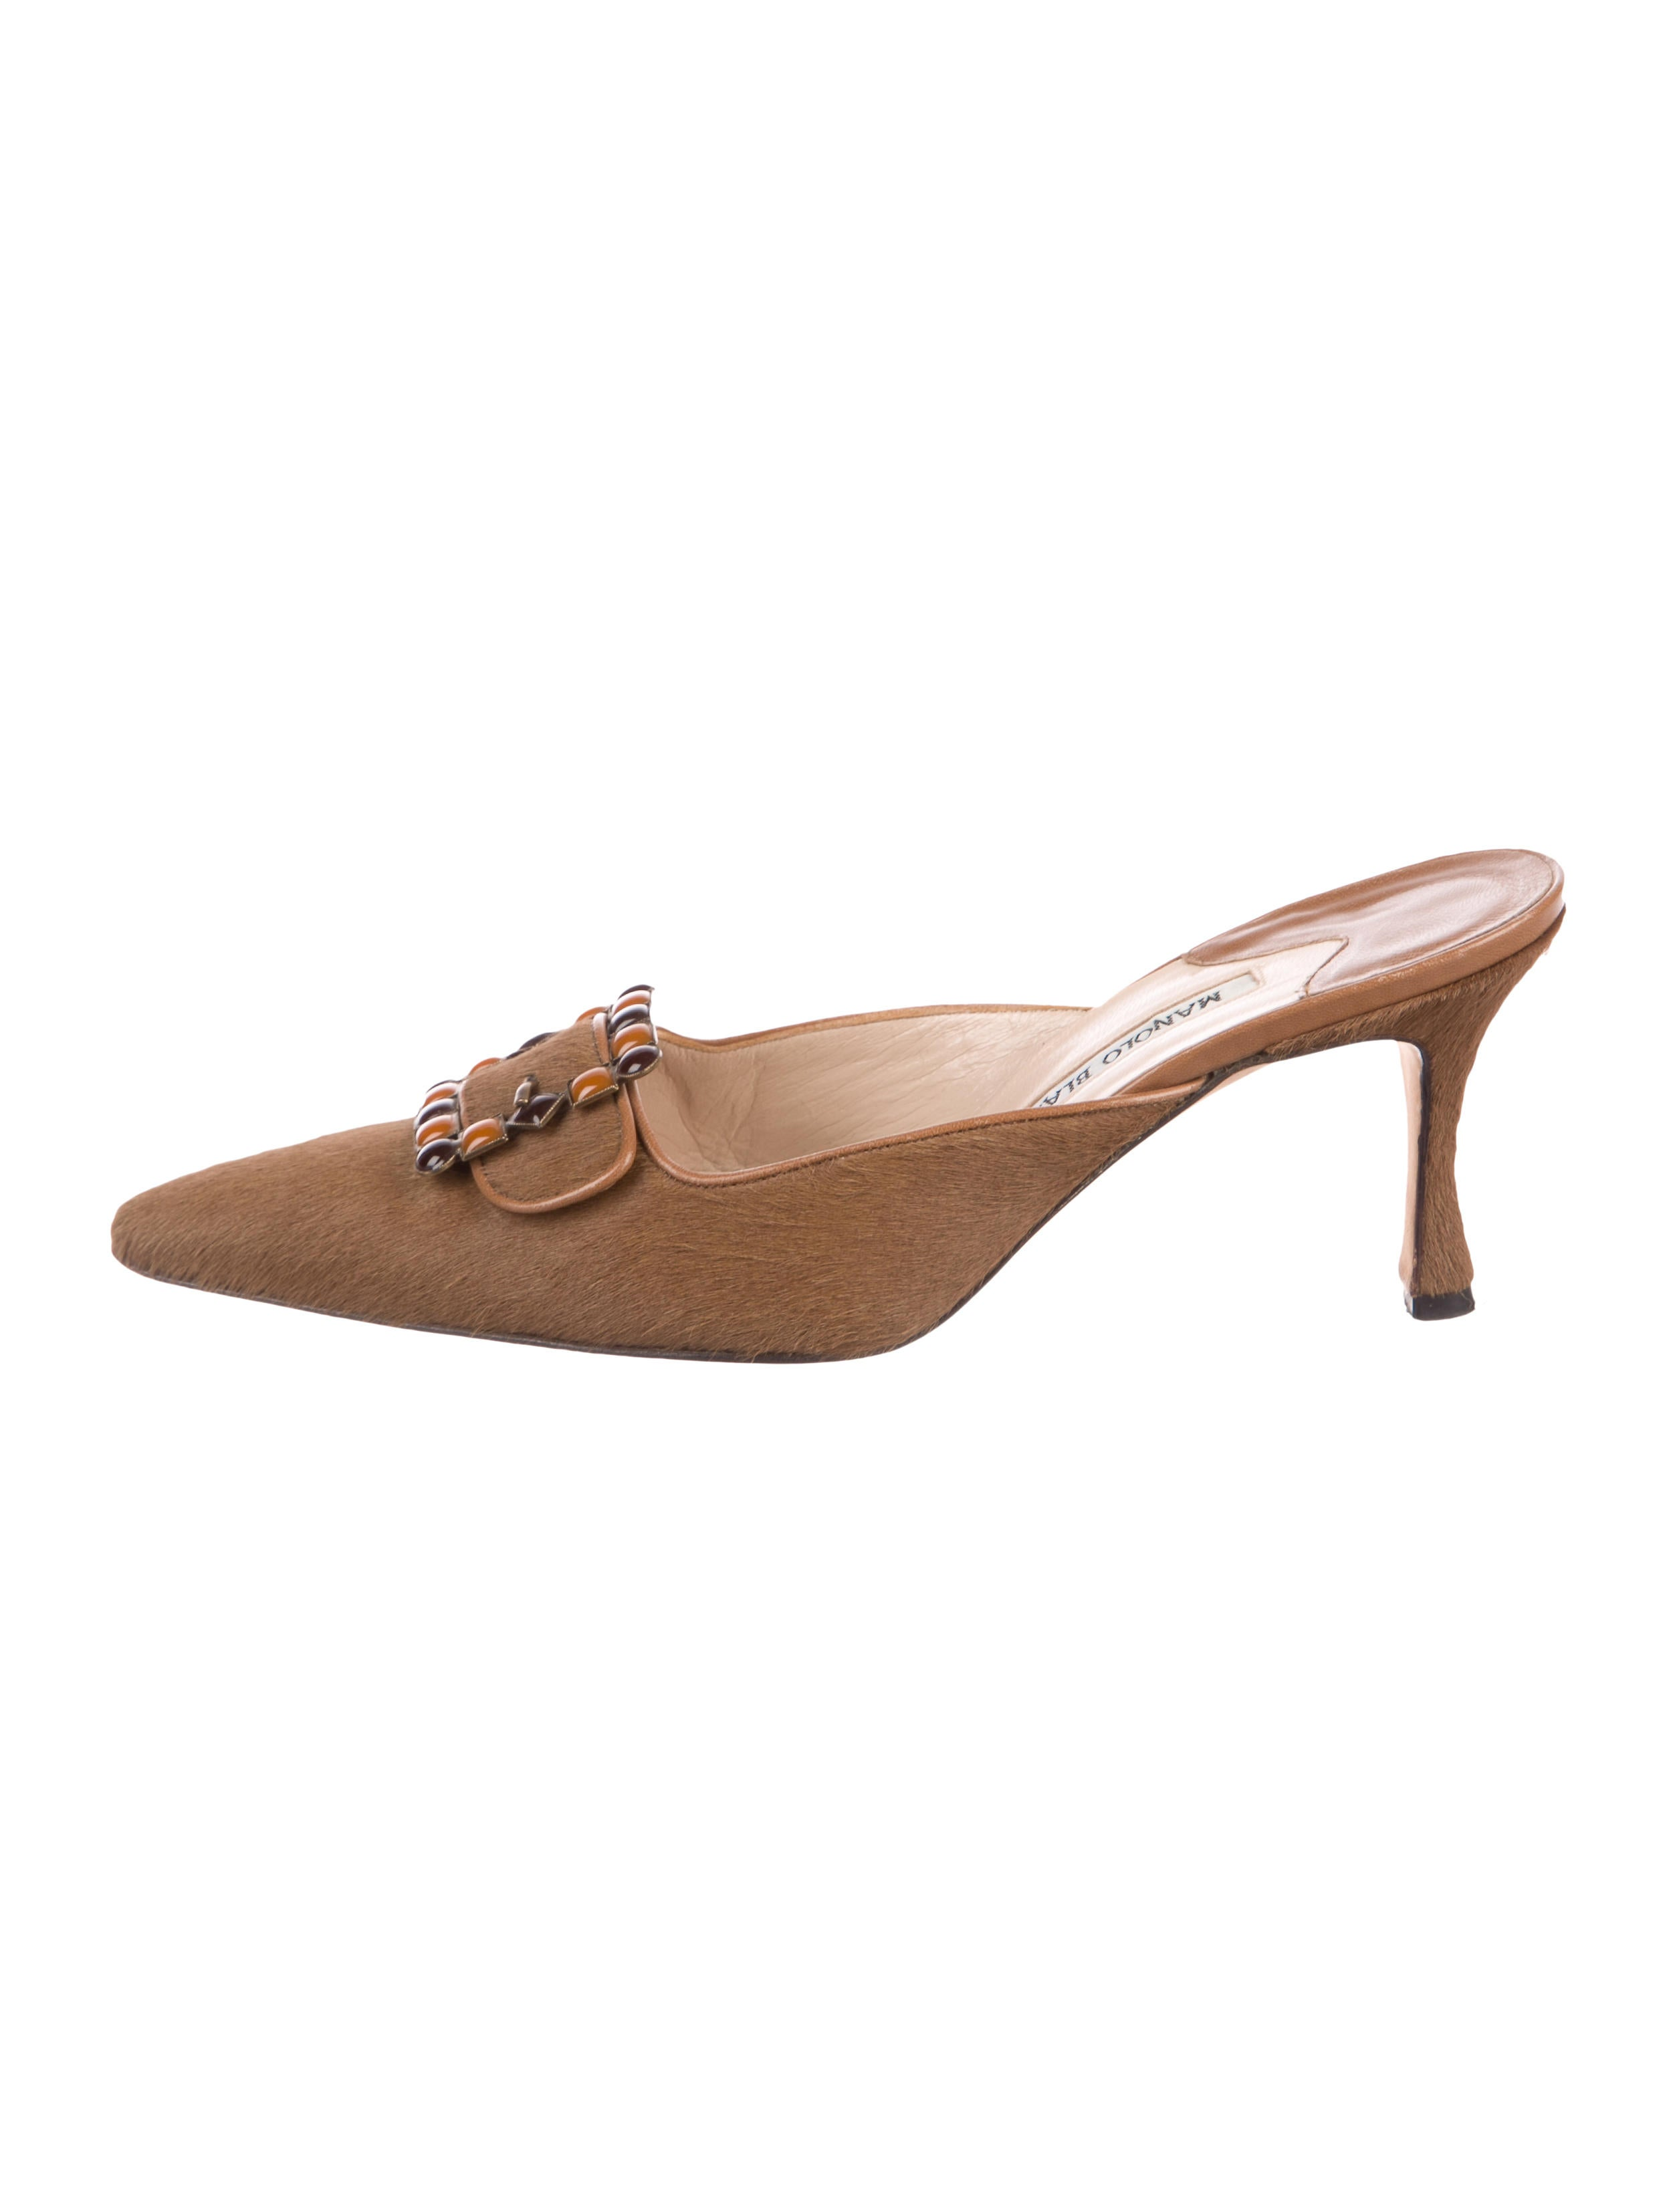 Manolo Blahnik Ponyhair Pointed-Toe Mules lowest price cheap price pay with visa for sale footaction zKcH7yPB